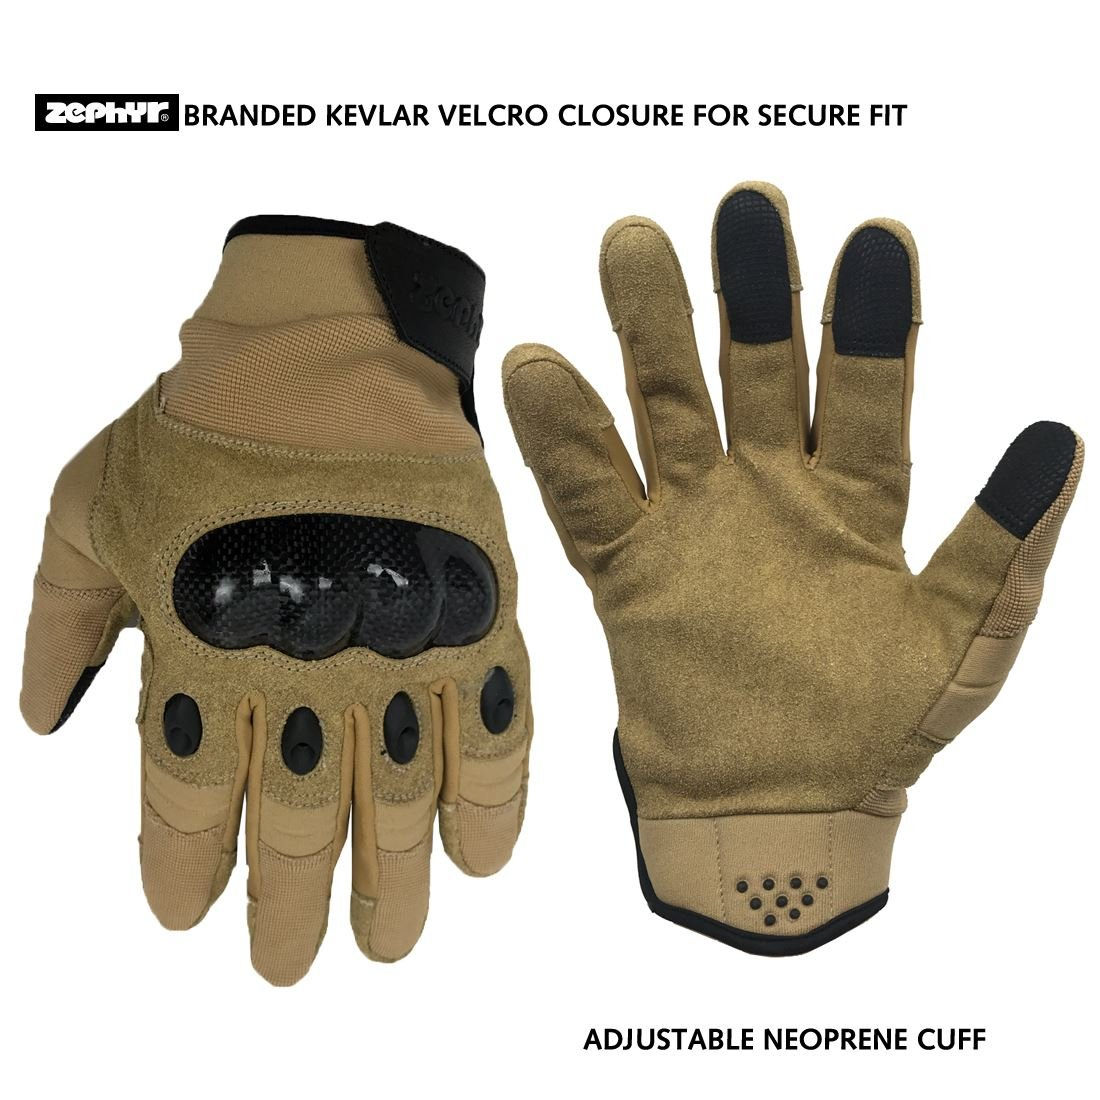 Zephyr Tactical Full Finger Carbon Fiber Knuckle Glovess with Touchscreen Technology - Tan - Medium by Zephyr Tactical